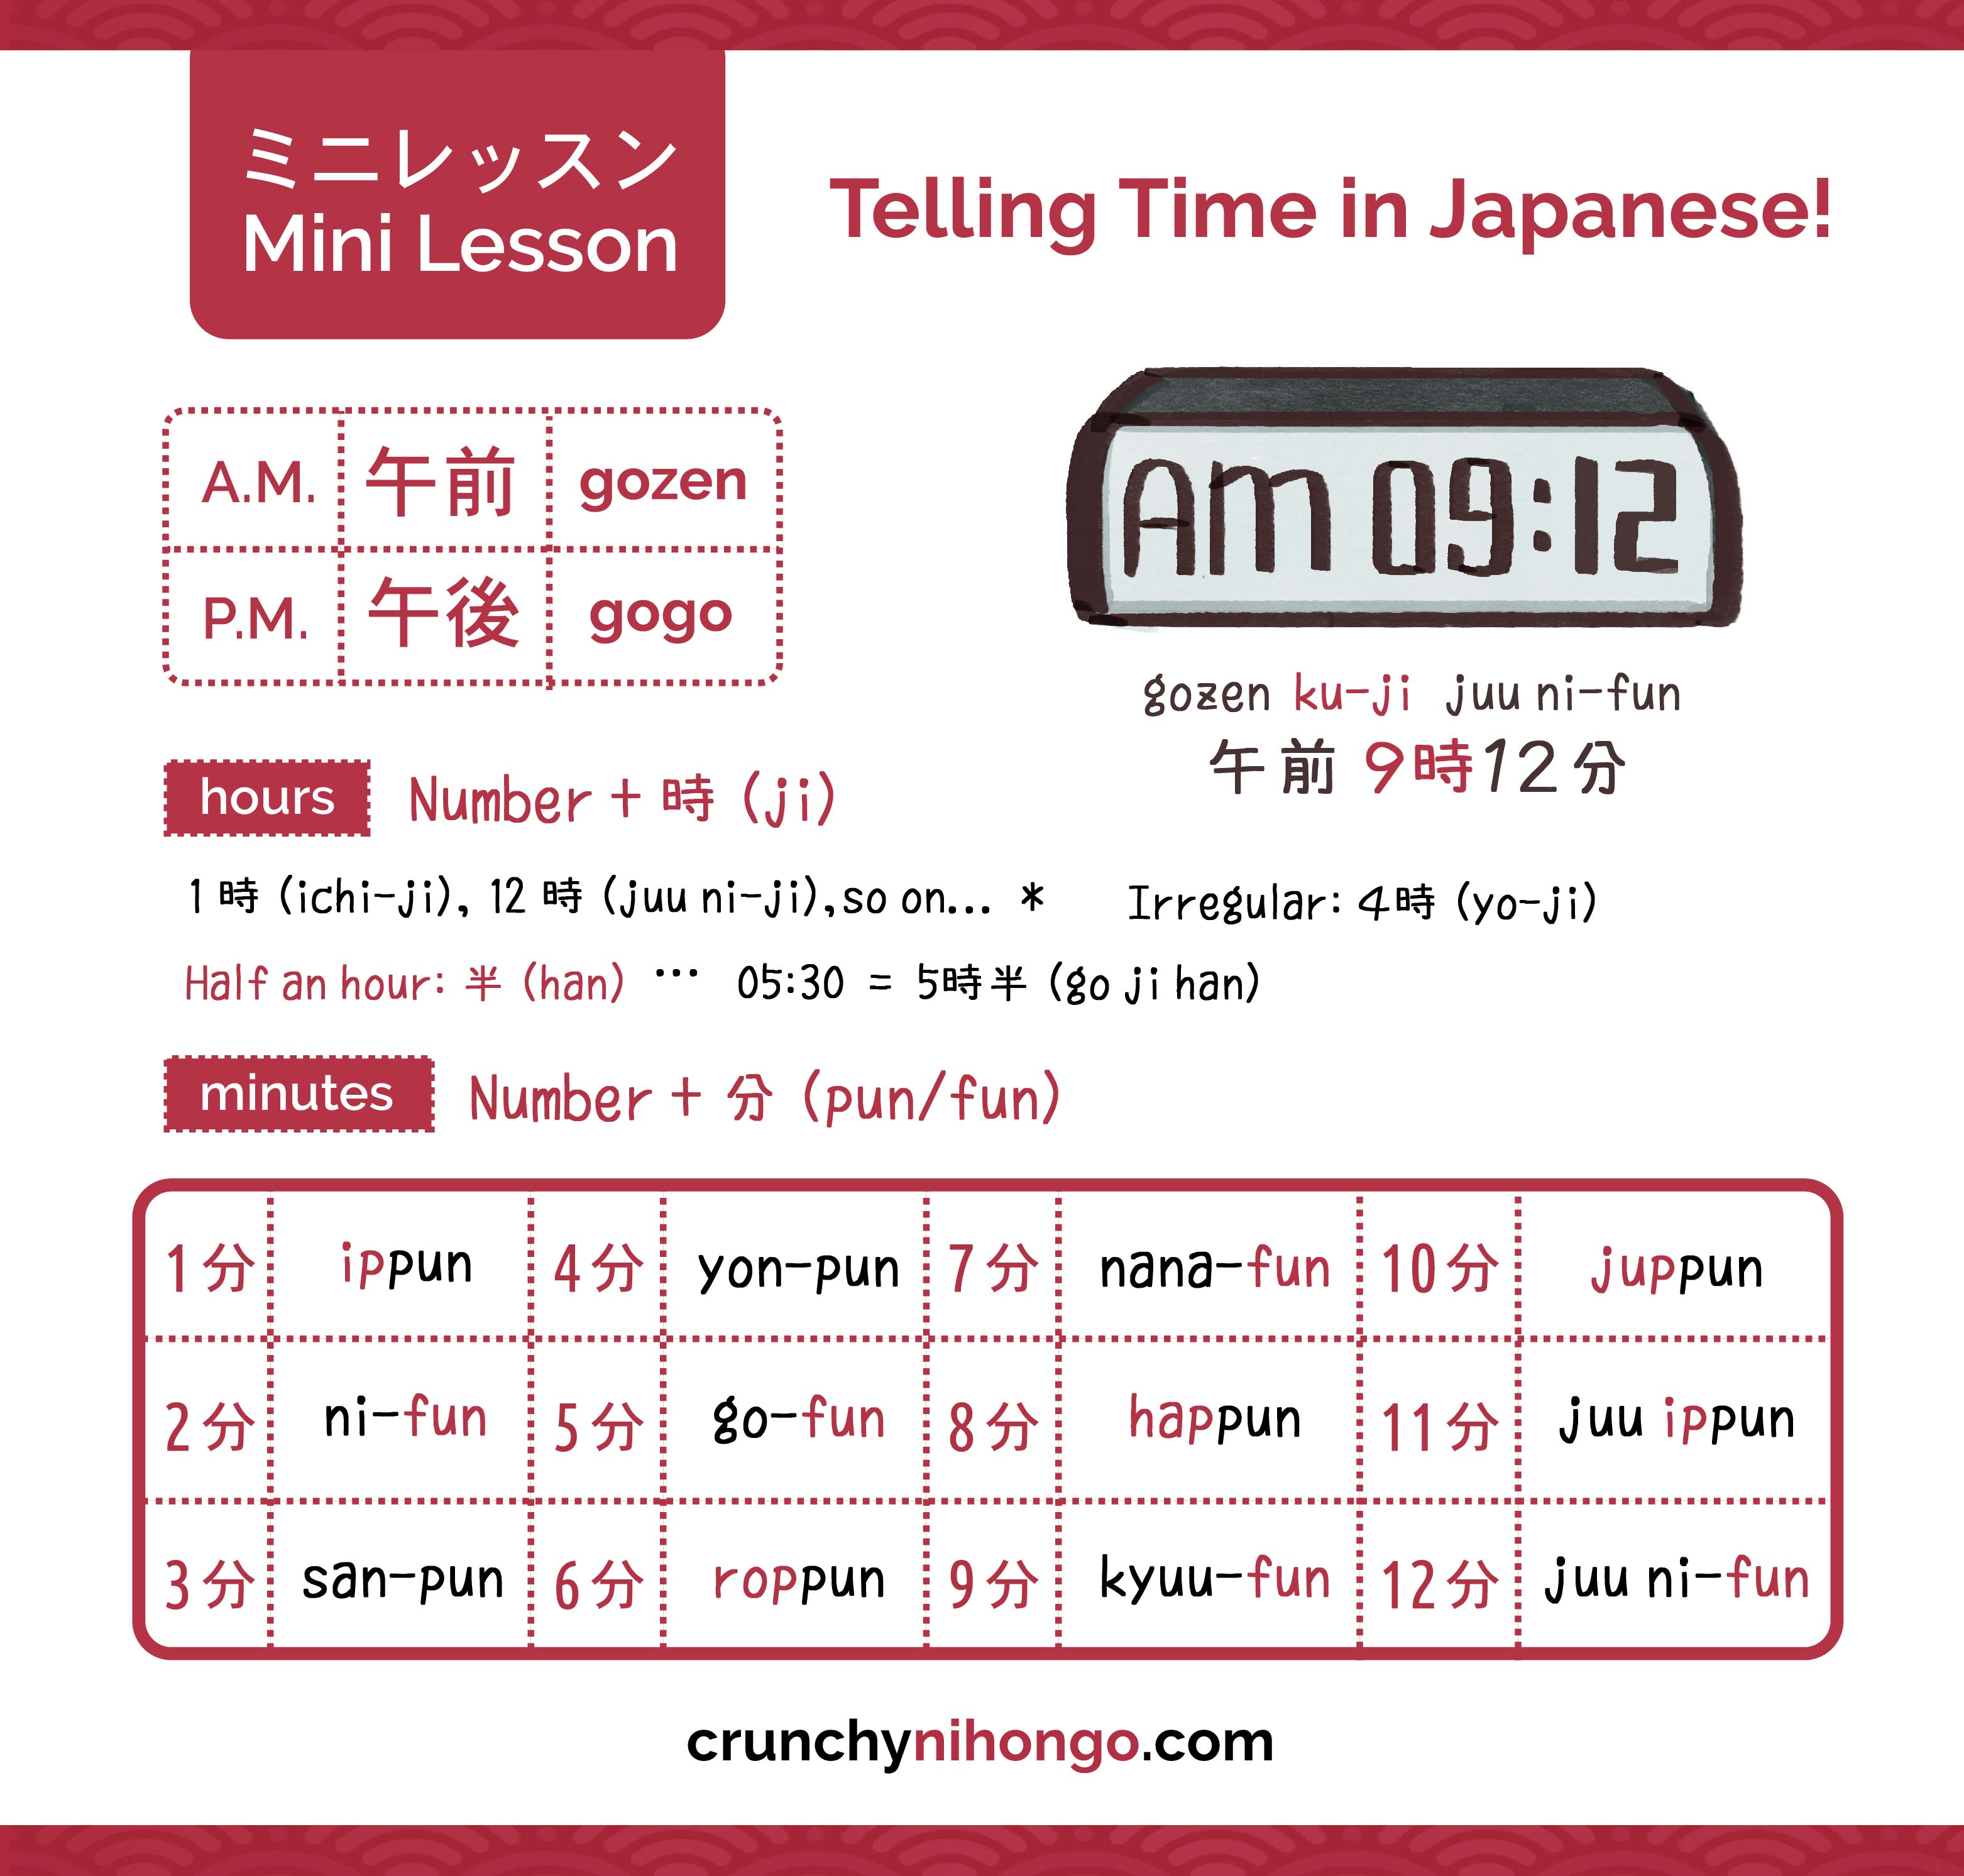 How To Tell Time In Japanese Crunchy Nihongo